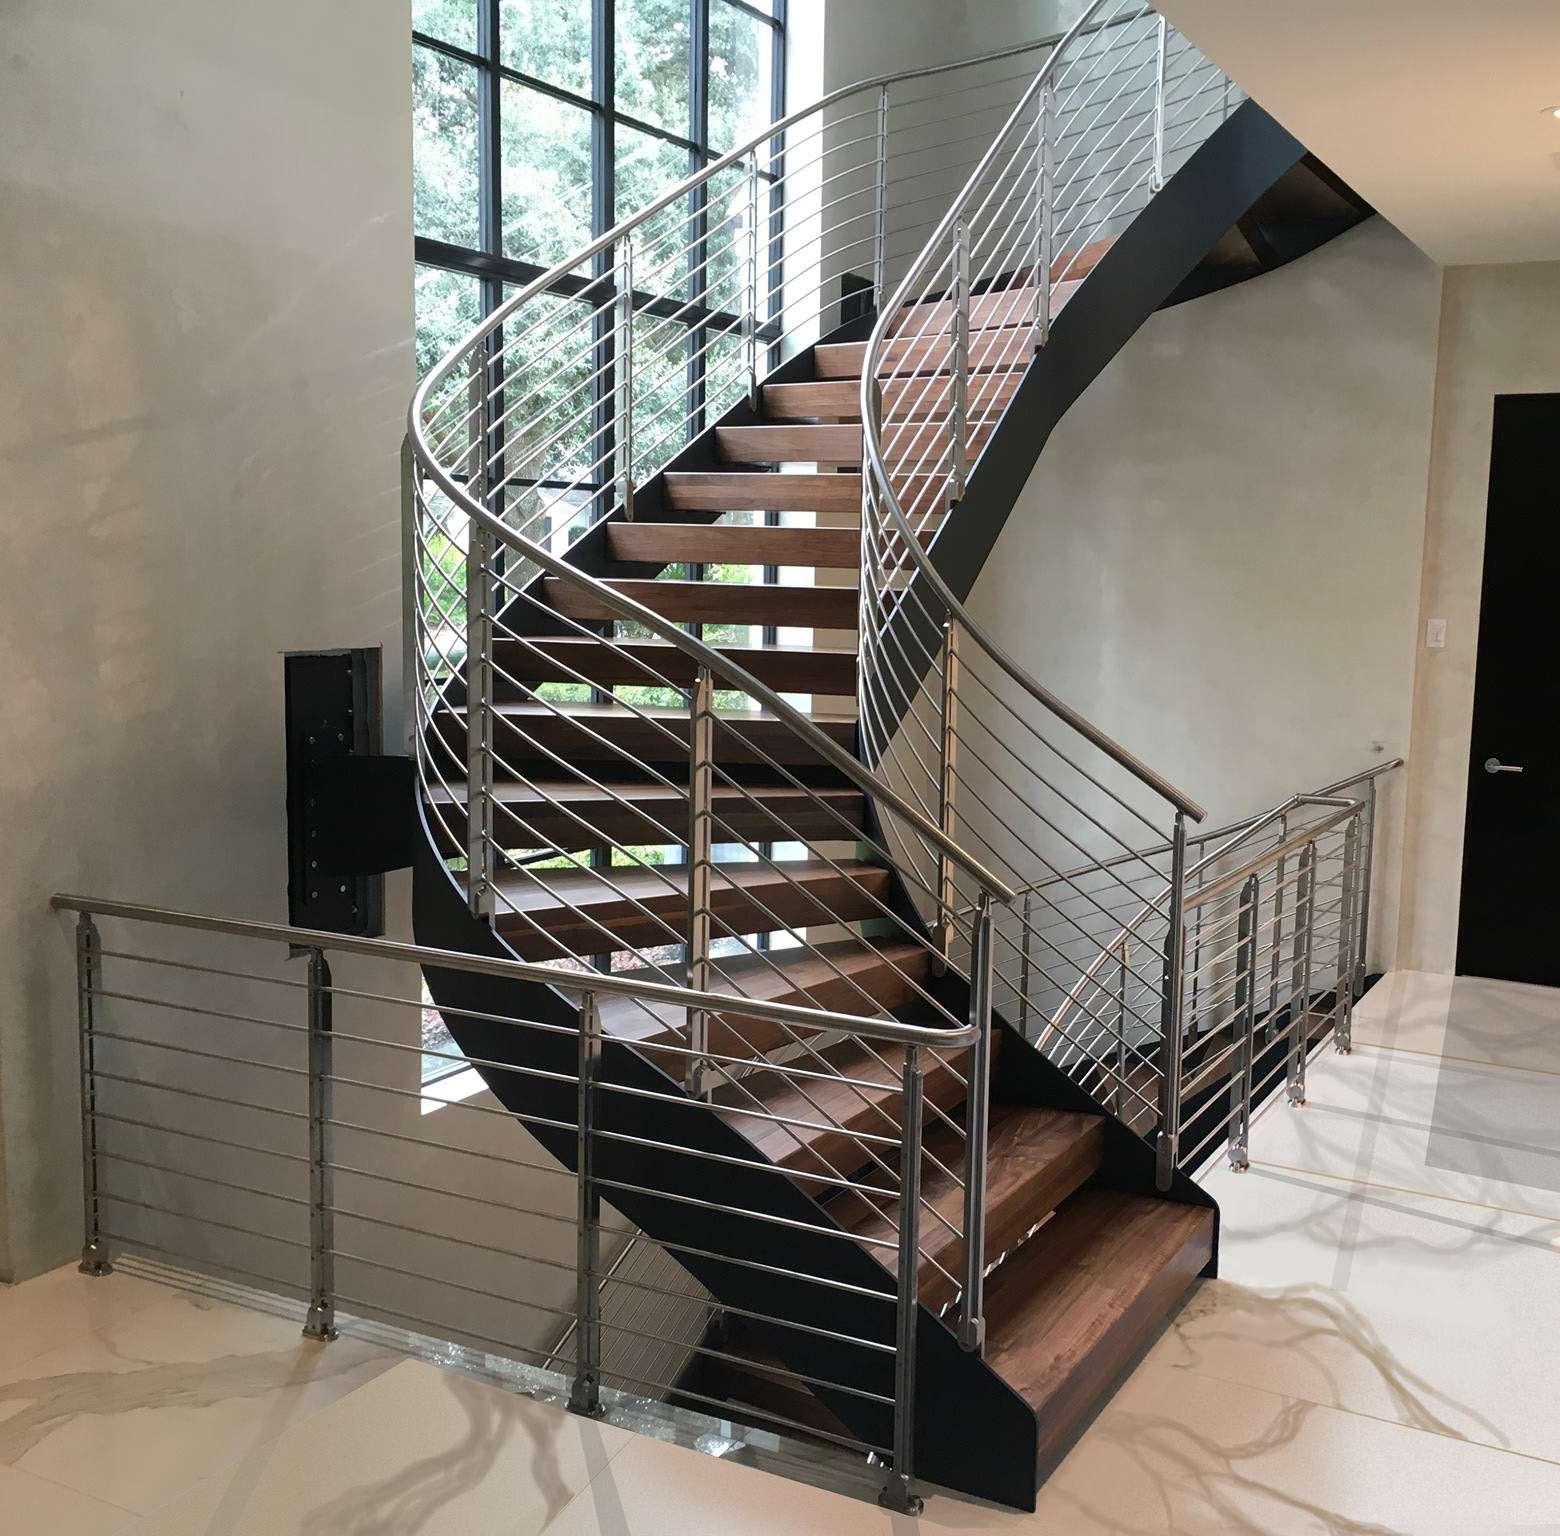 Picture of: China Modern Staircase Design Wood Steel Curved Staircase Decorative Interior Staircase China Staircase Design Wooden Staircase